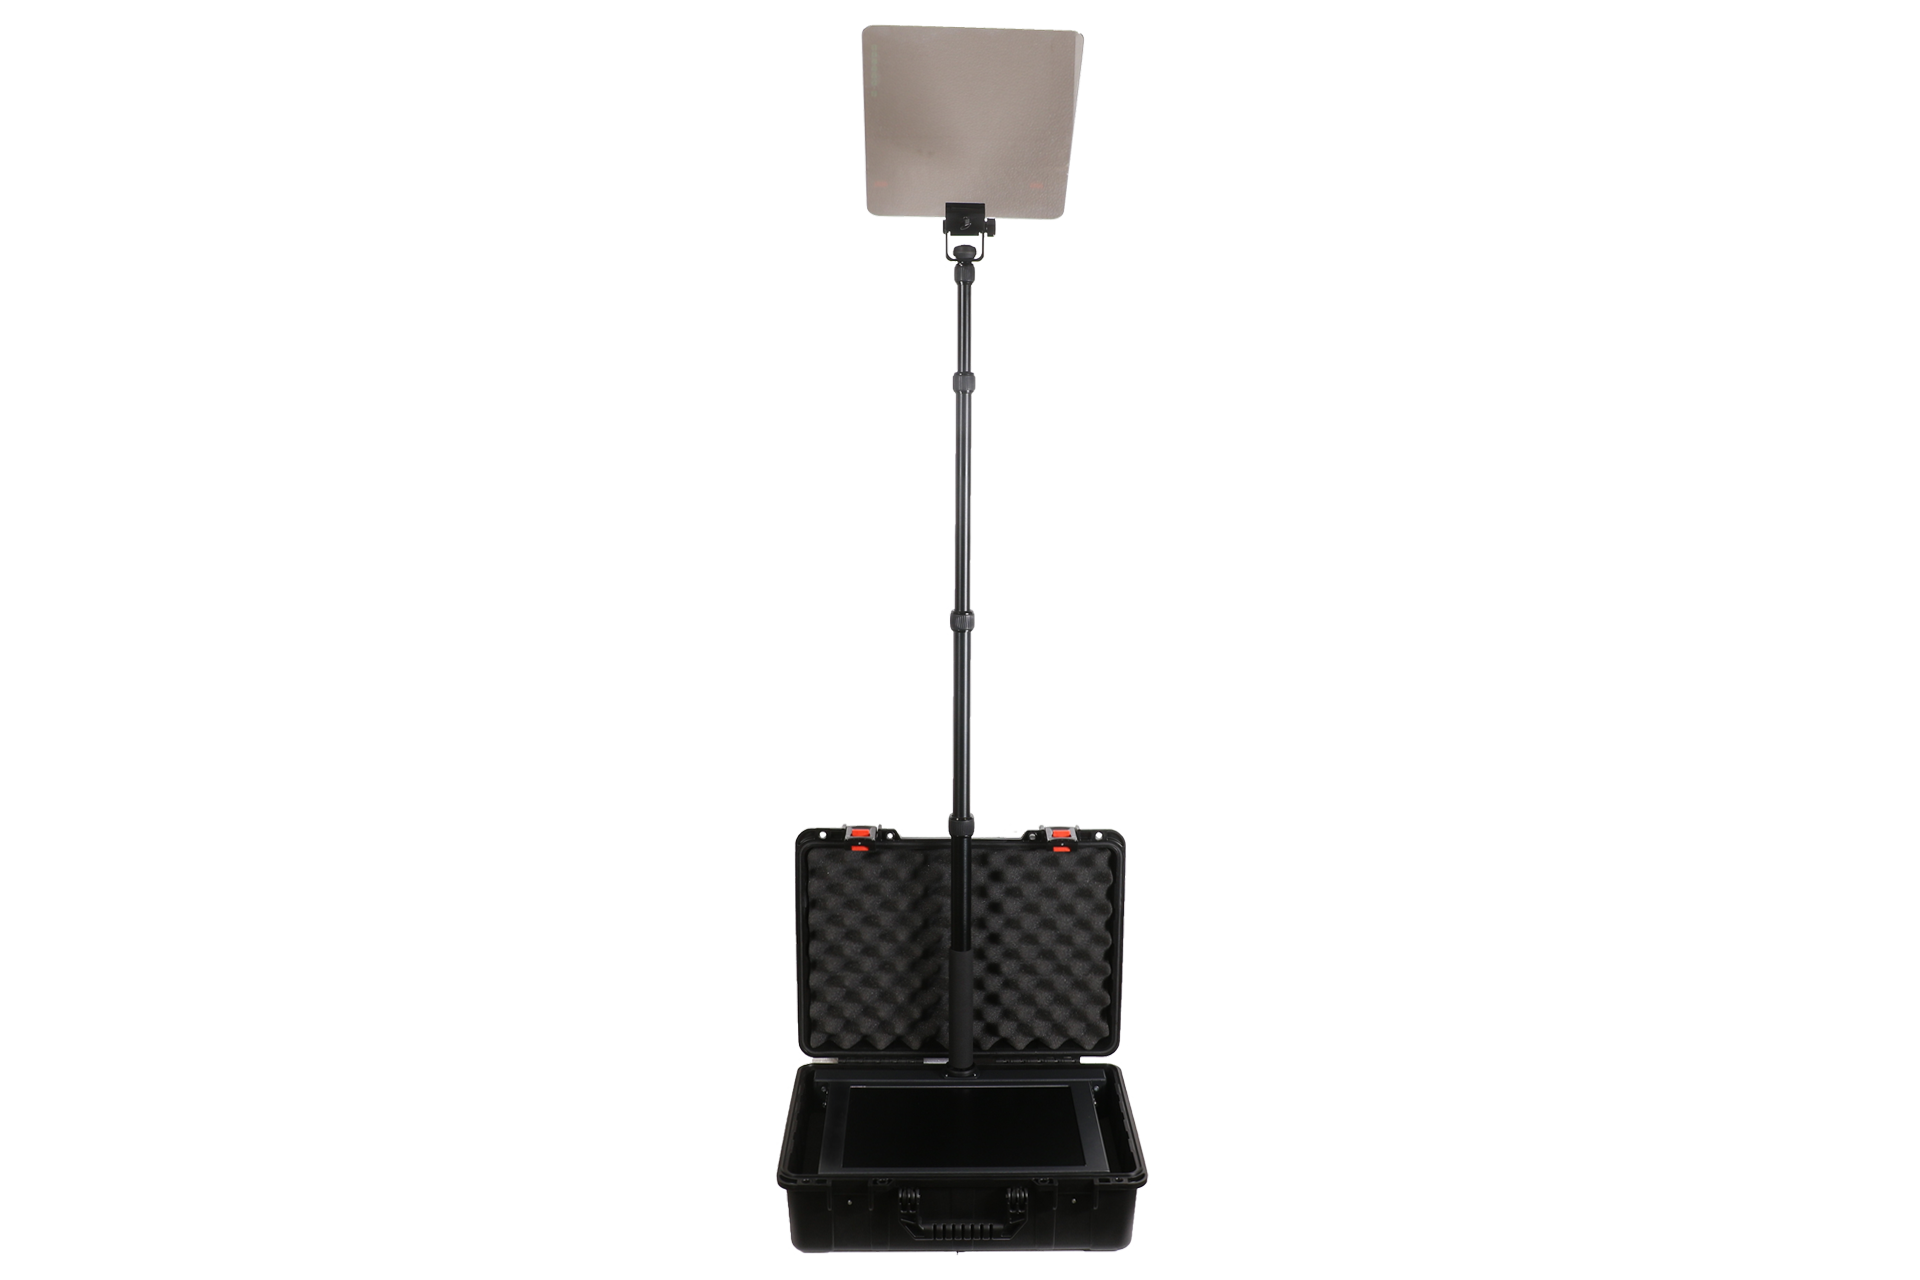 PRO Series Mobile Conference Prompter